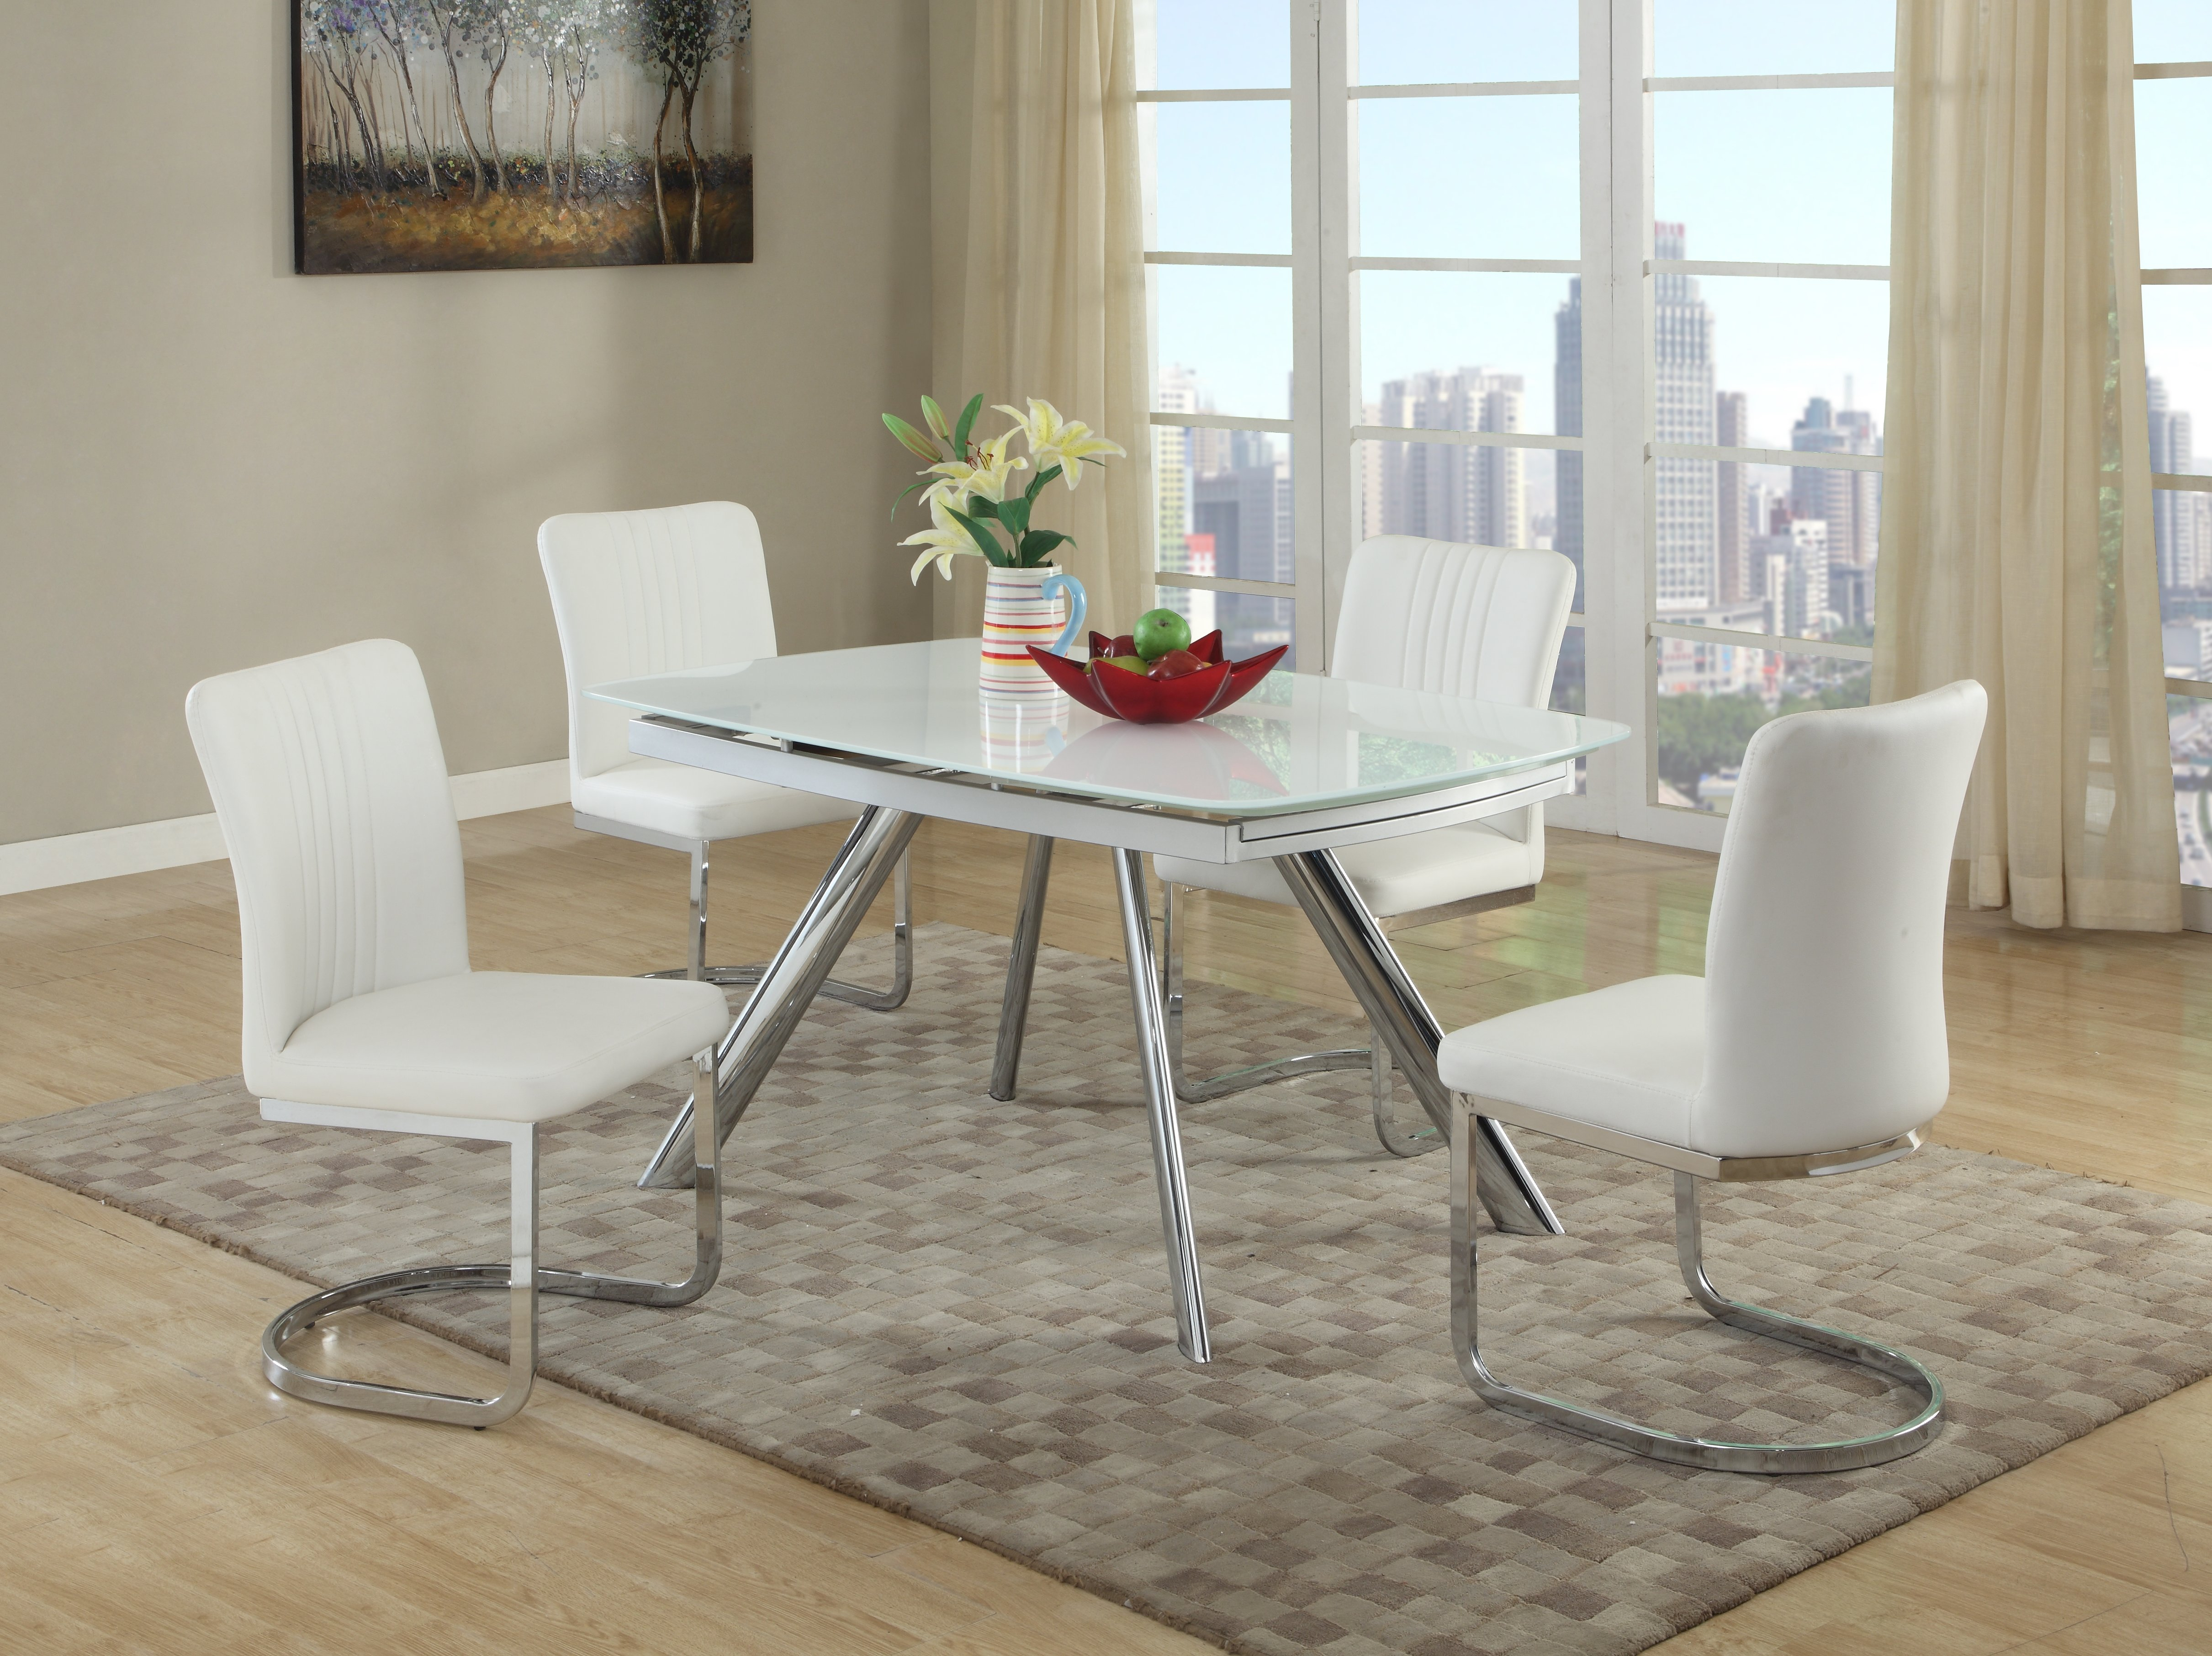 Deann 5 Piece Dining Set Inside Most Recent Linette 5 Piece Dining Table Sets (View 2 of 20)